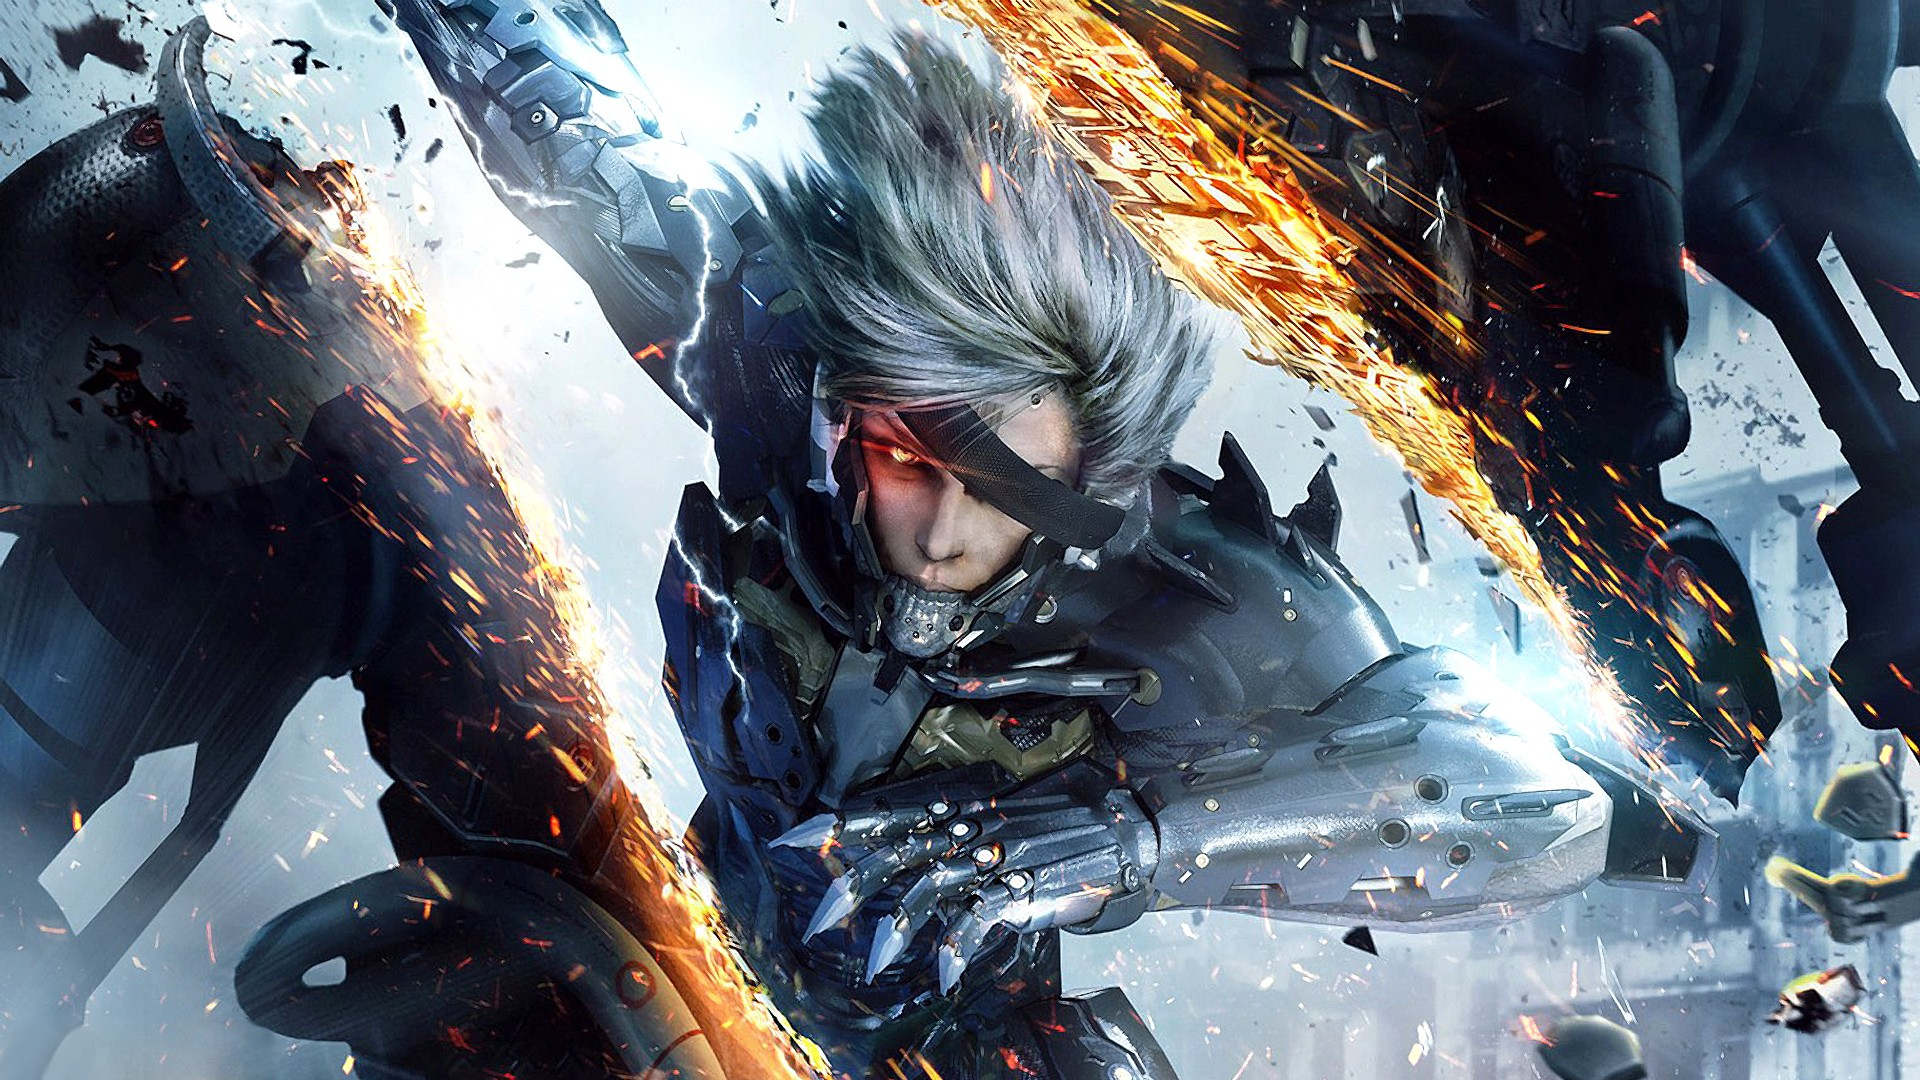 Screens Zimmer 9 angezeig: metal gear rising revengeance trainer pc